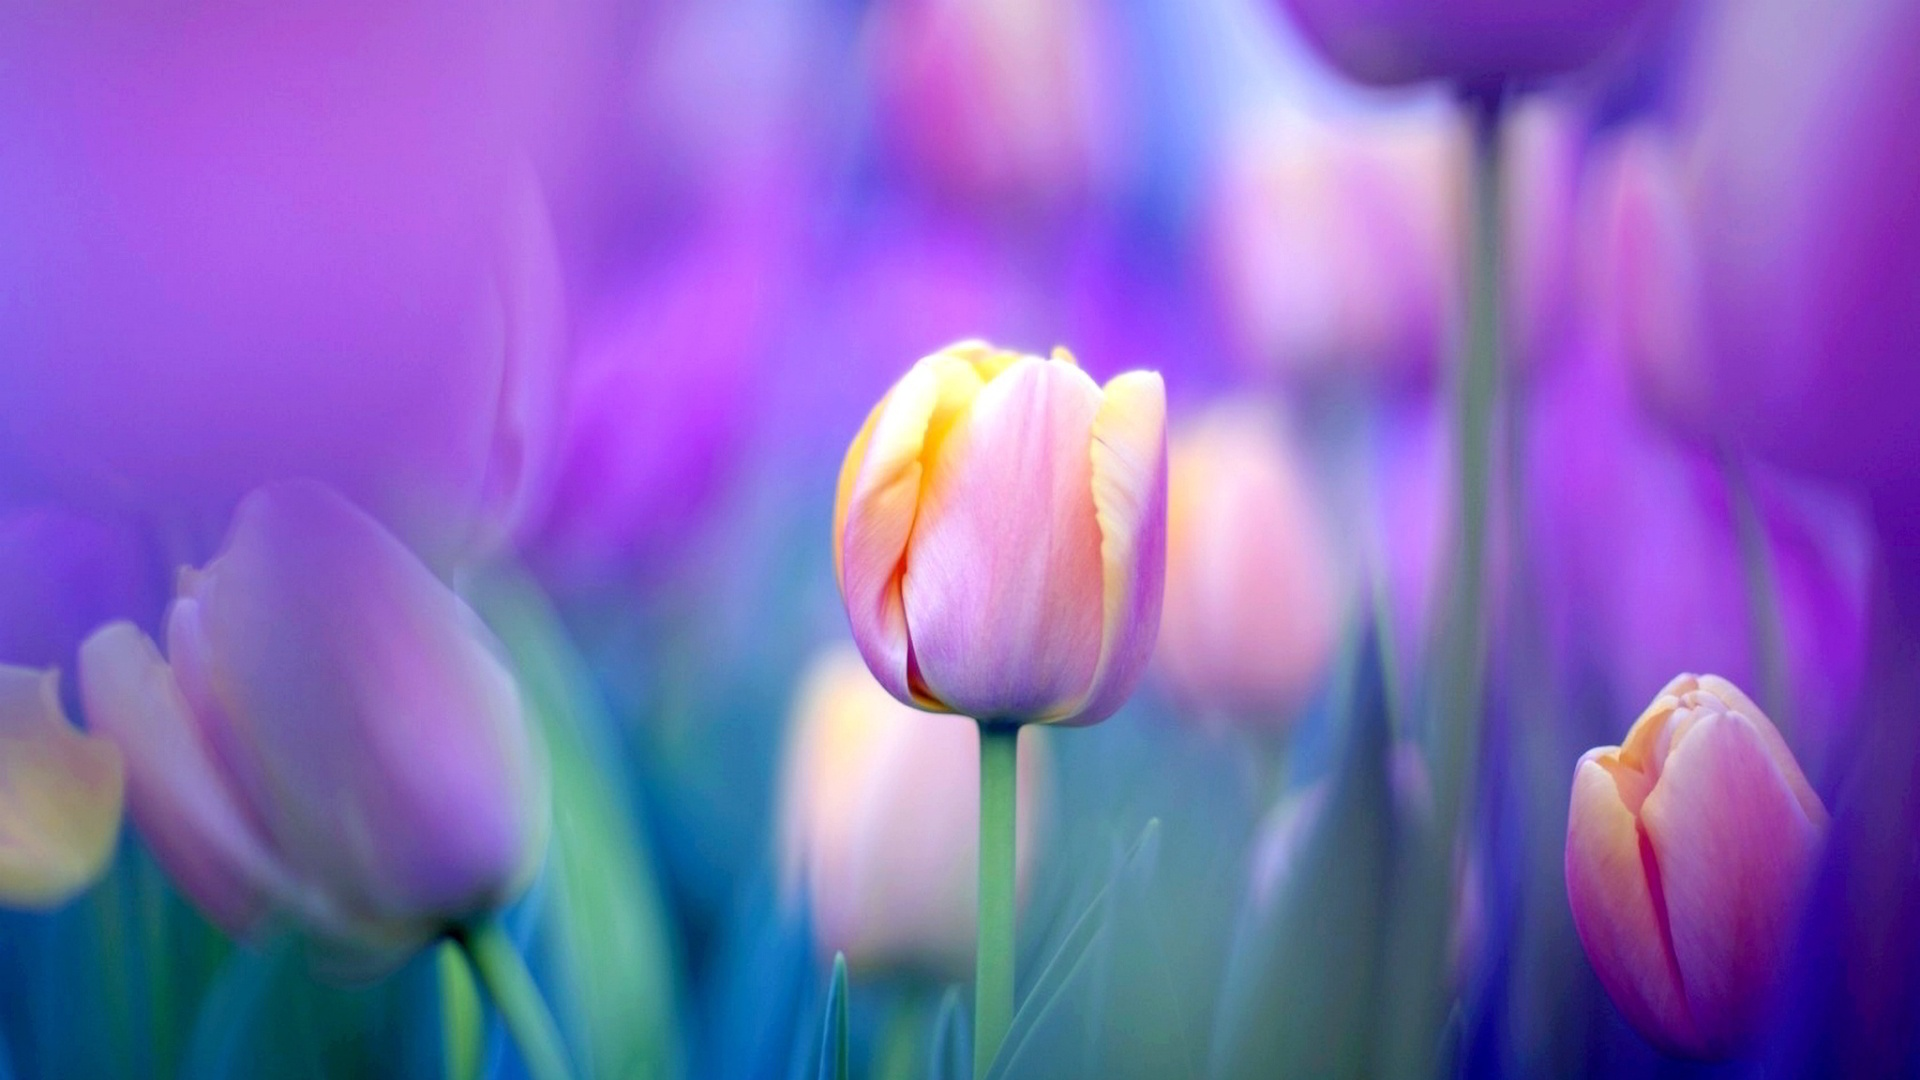 Tulips Flower Wallpaper for Your Desktop Background